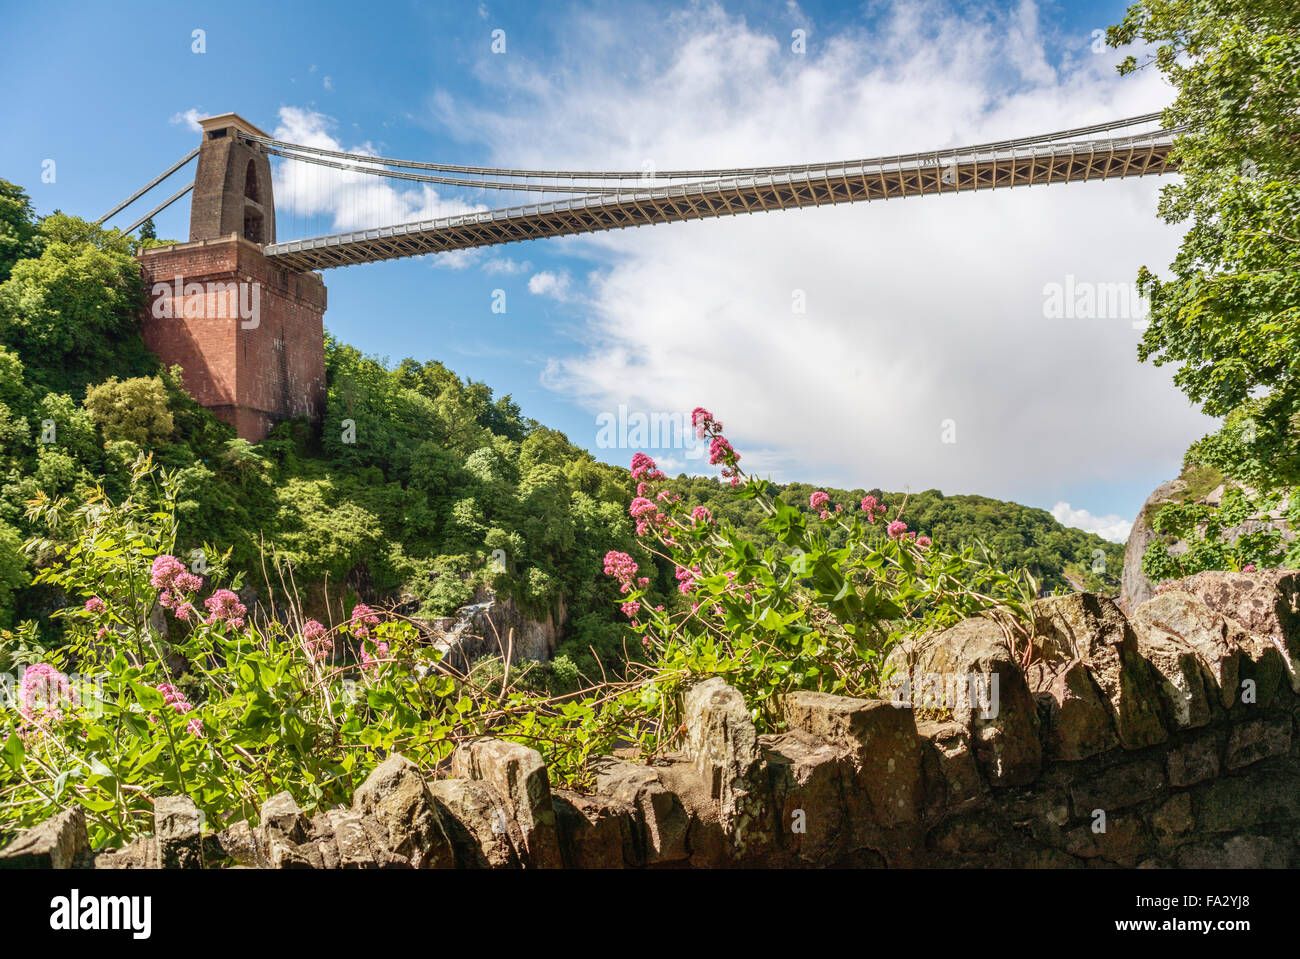 View at the Clifton Suspension Bridge and Avon River Valley, Bristol, Somerset, England - Stock Image